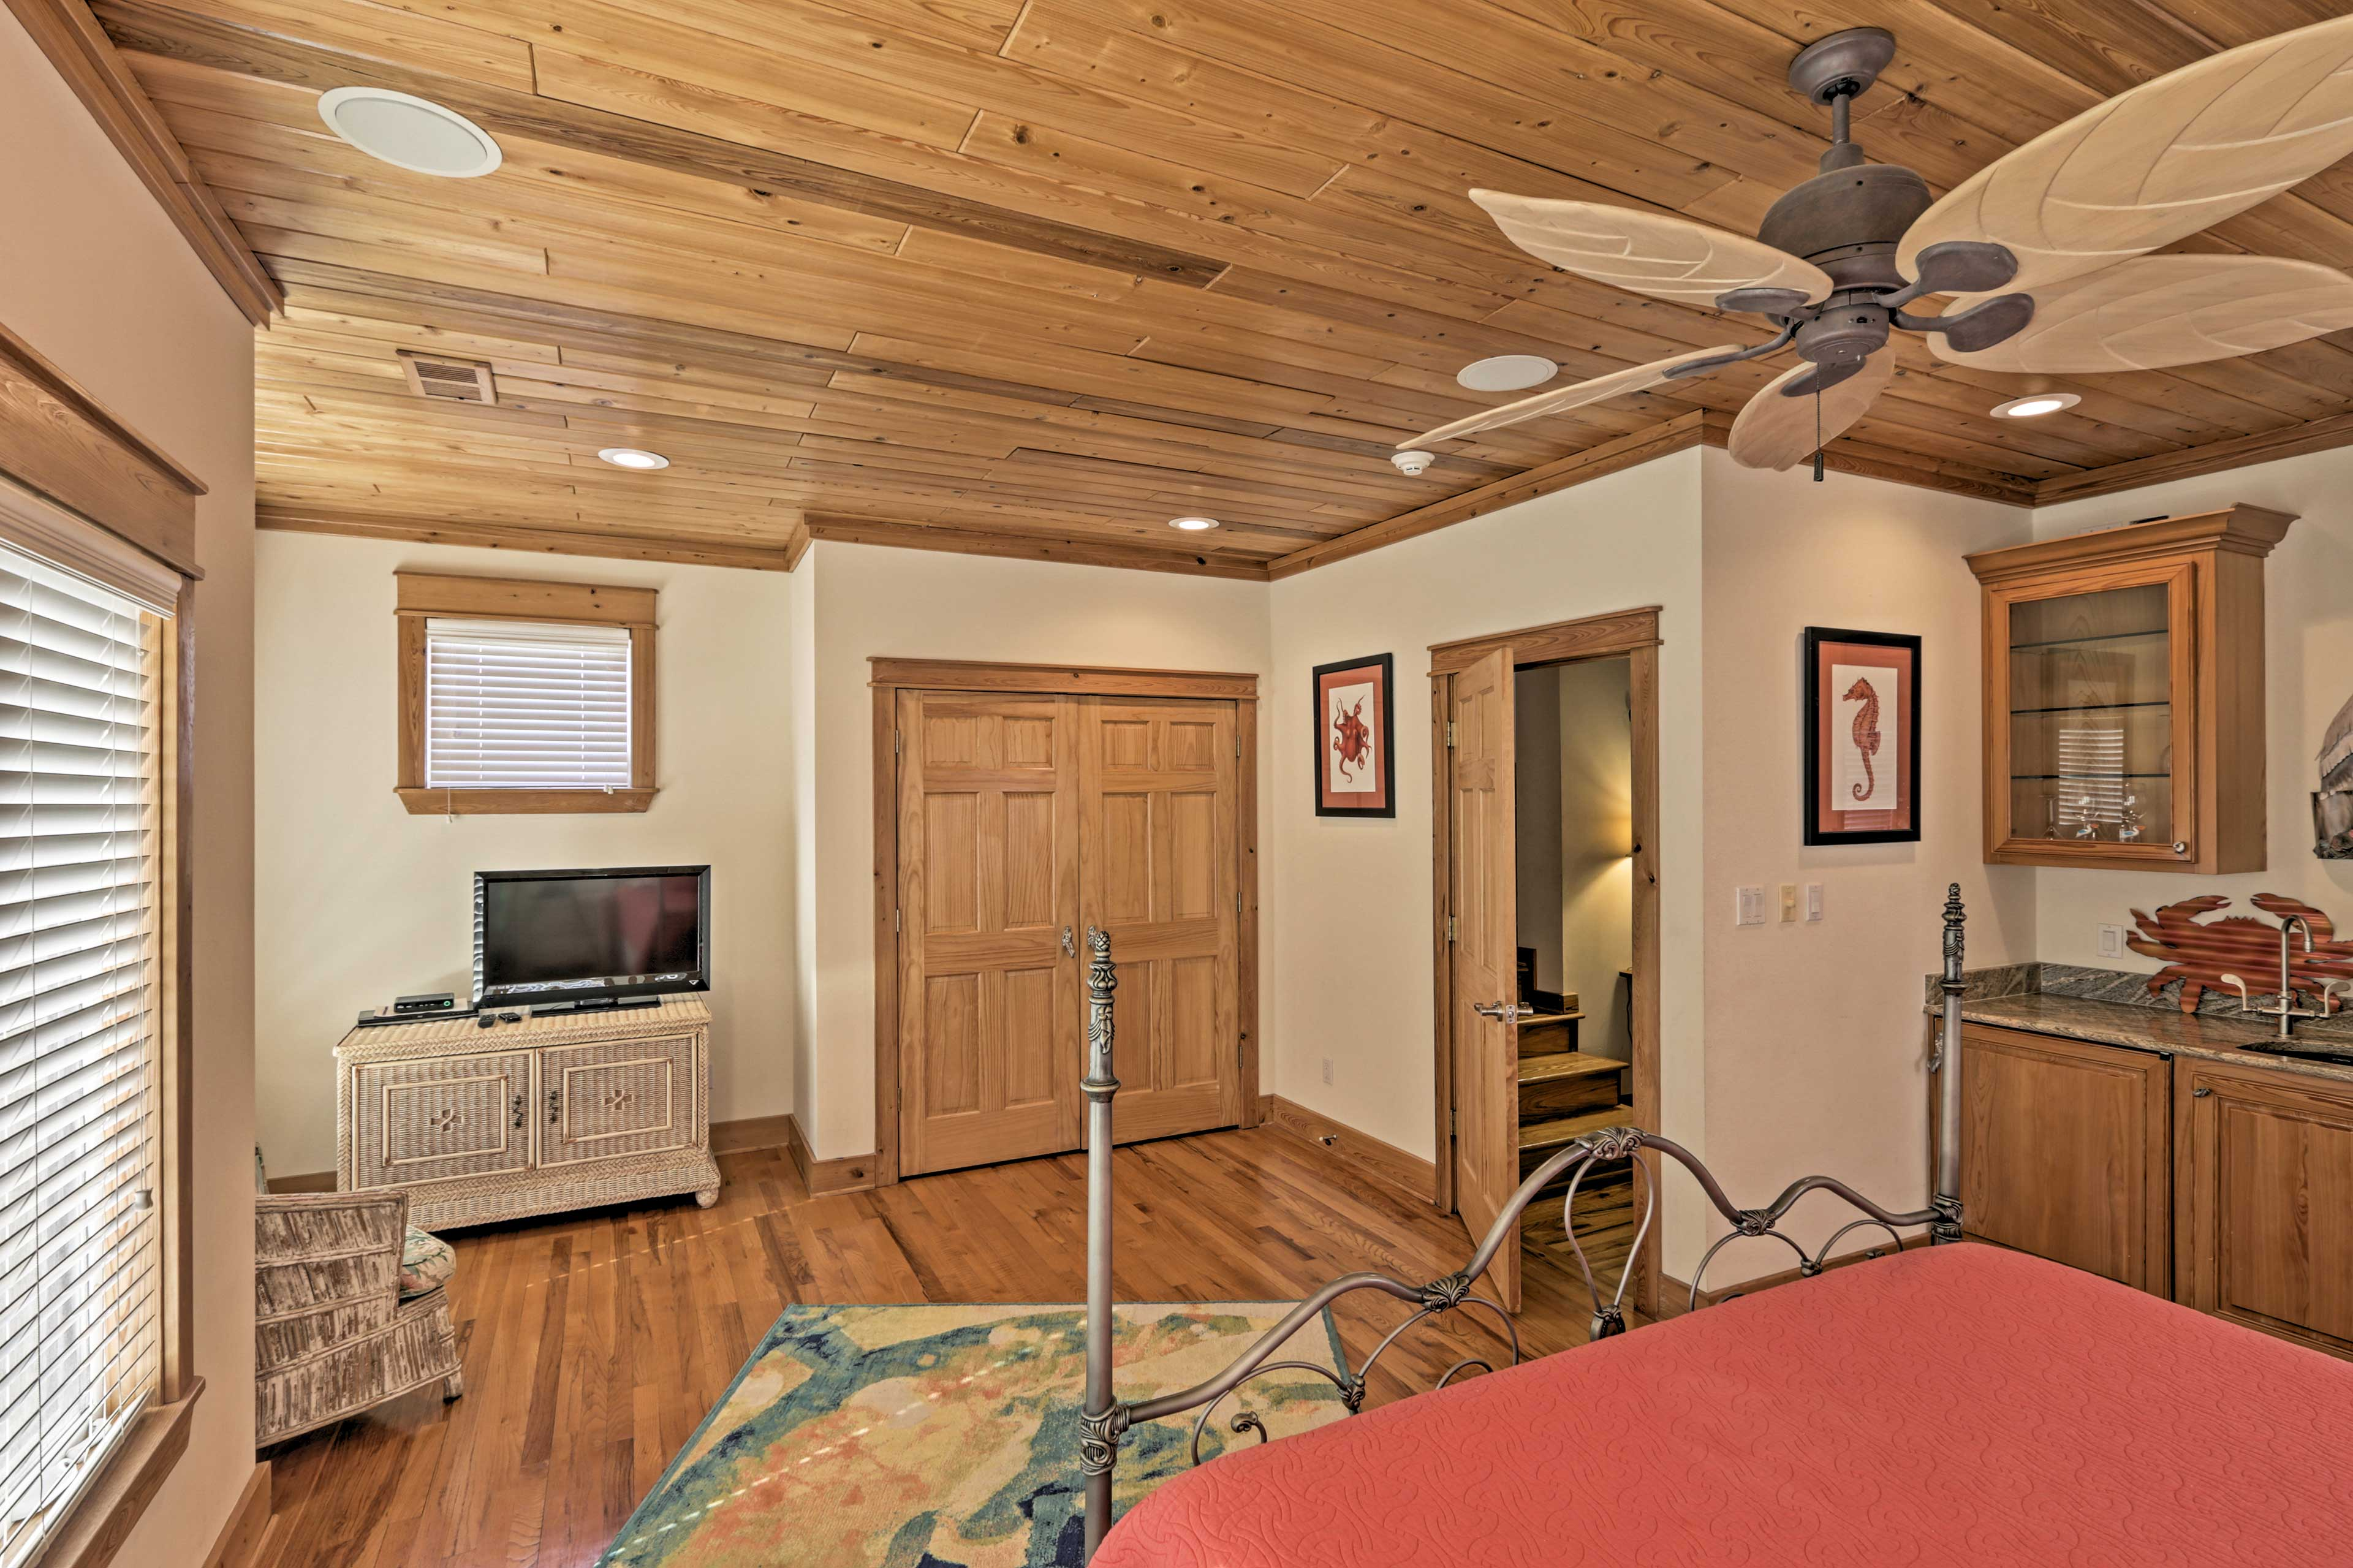 All 3 rooms come complete with flat-screen cable/Smart TVs and en-suite bathrooms.